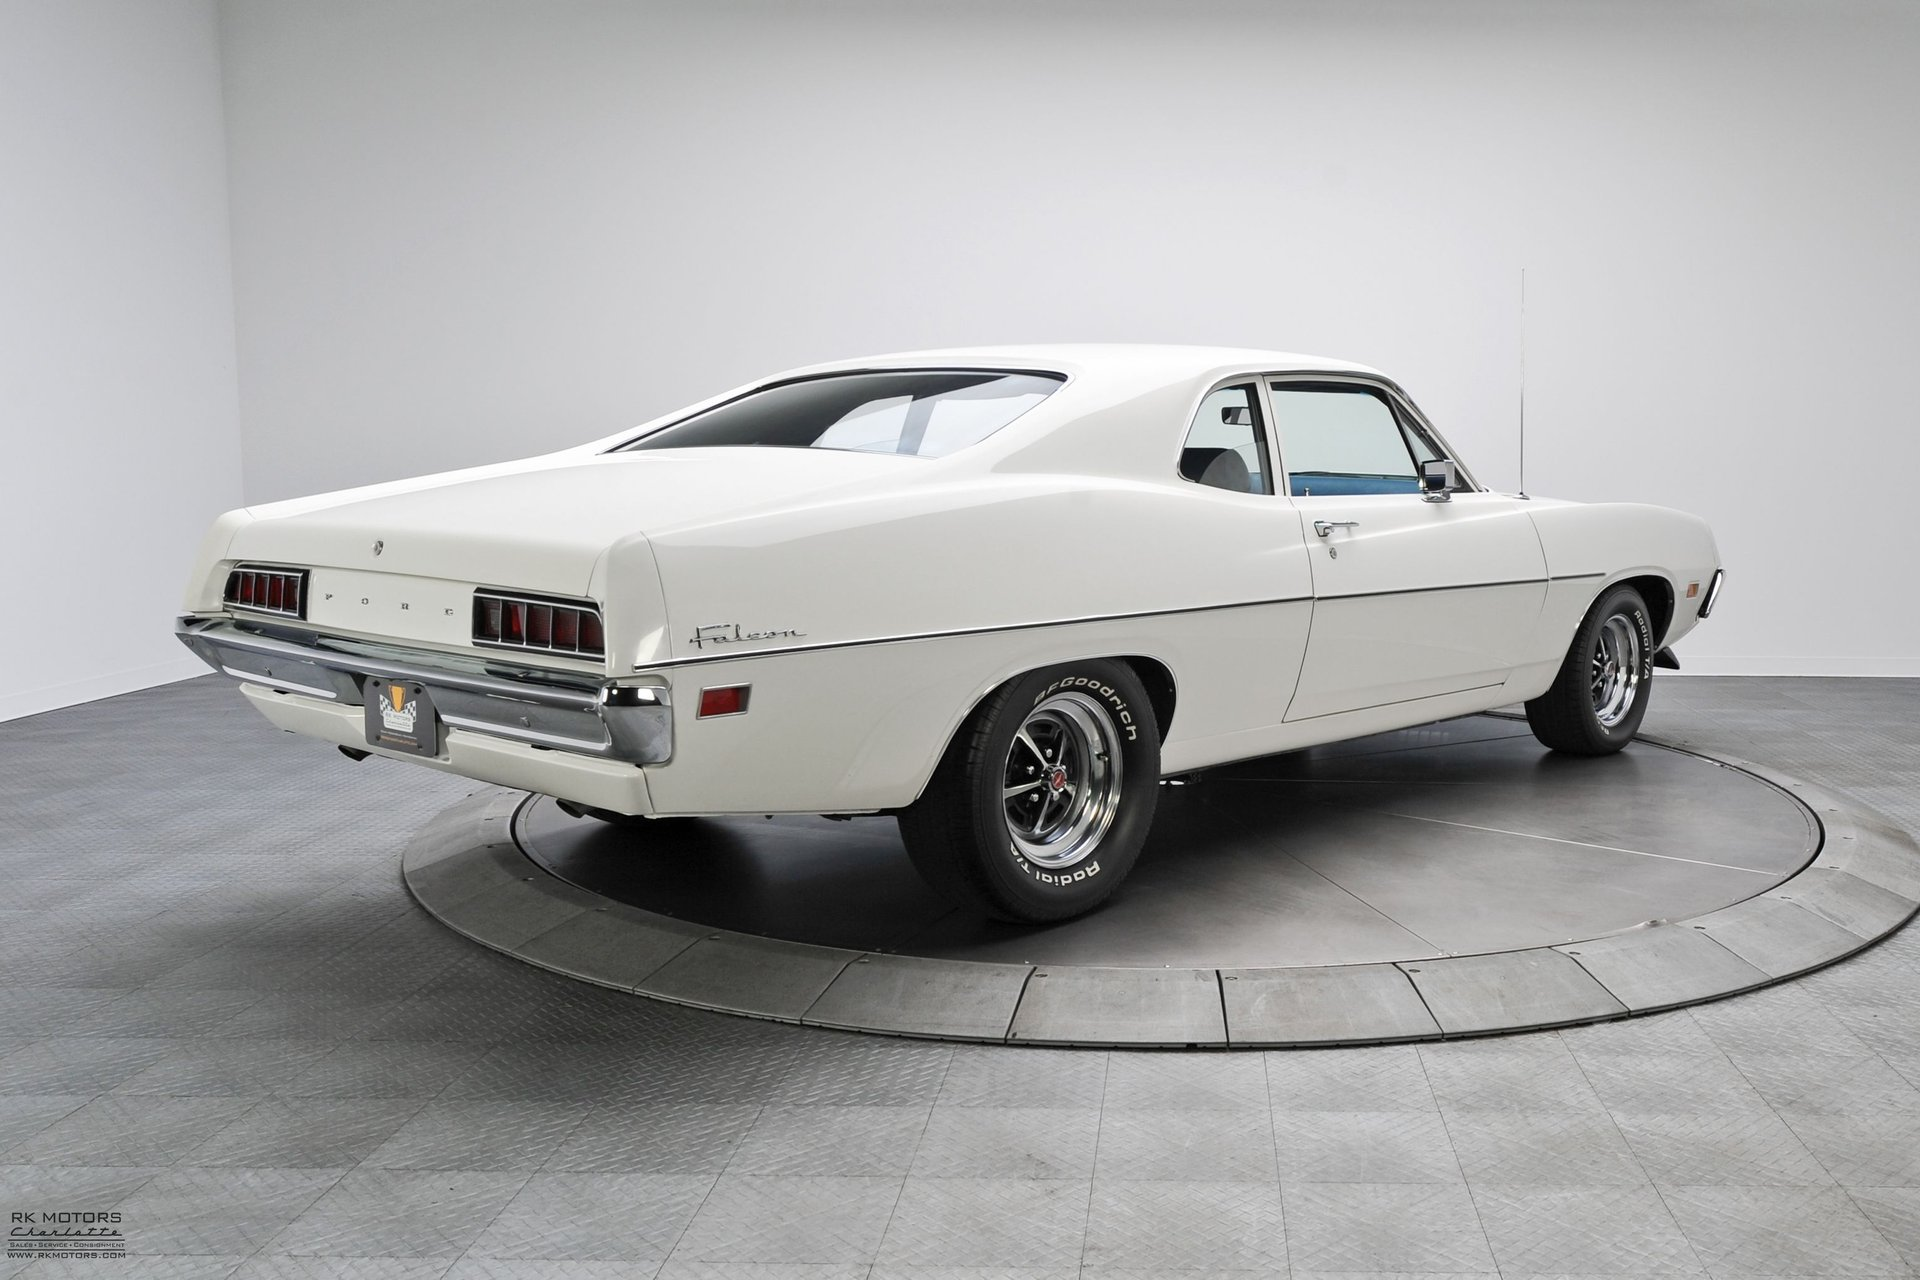 133374 1970 1/2 Ford Falcon RK Motors Classic Cars for Sale